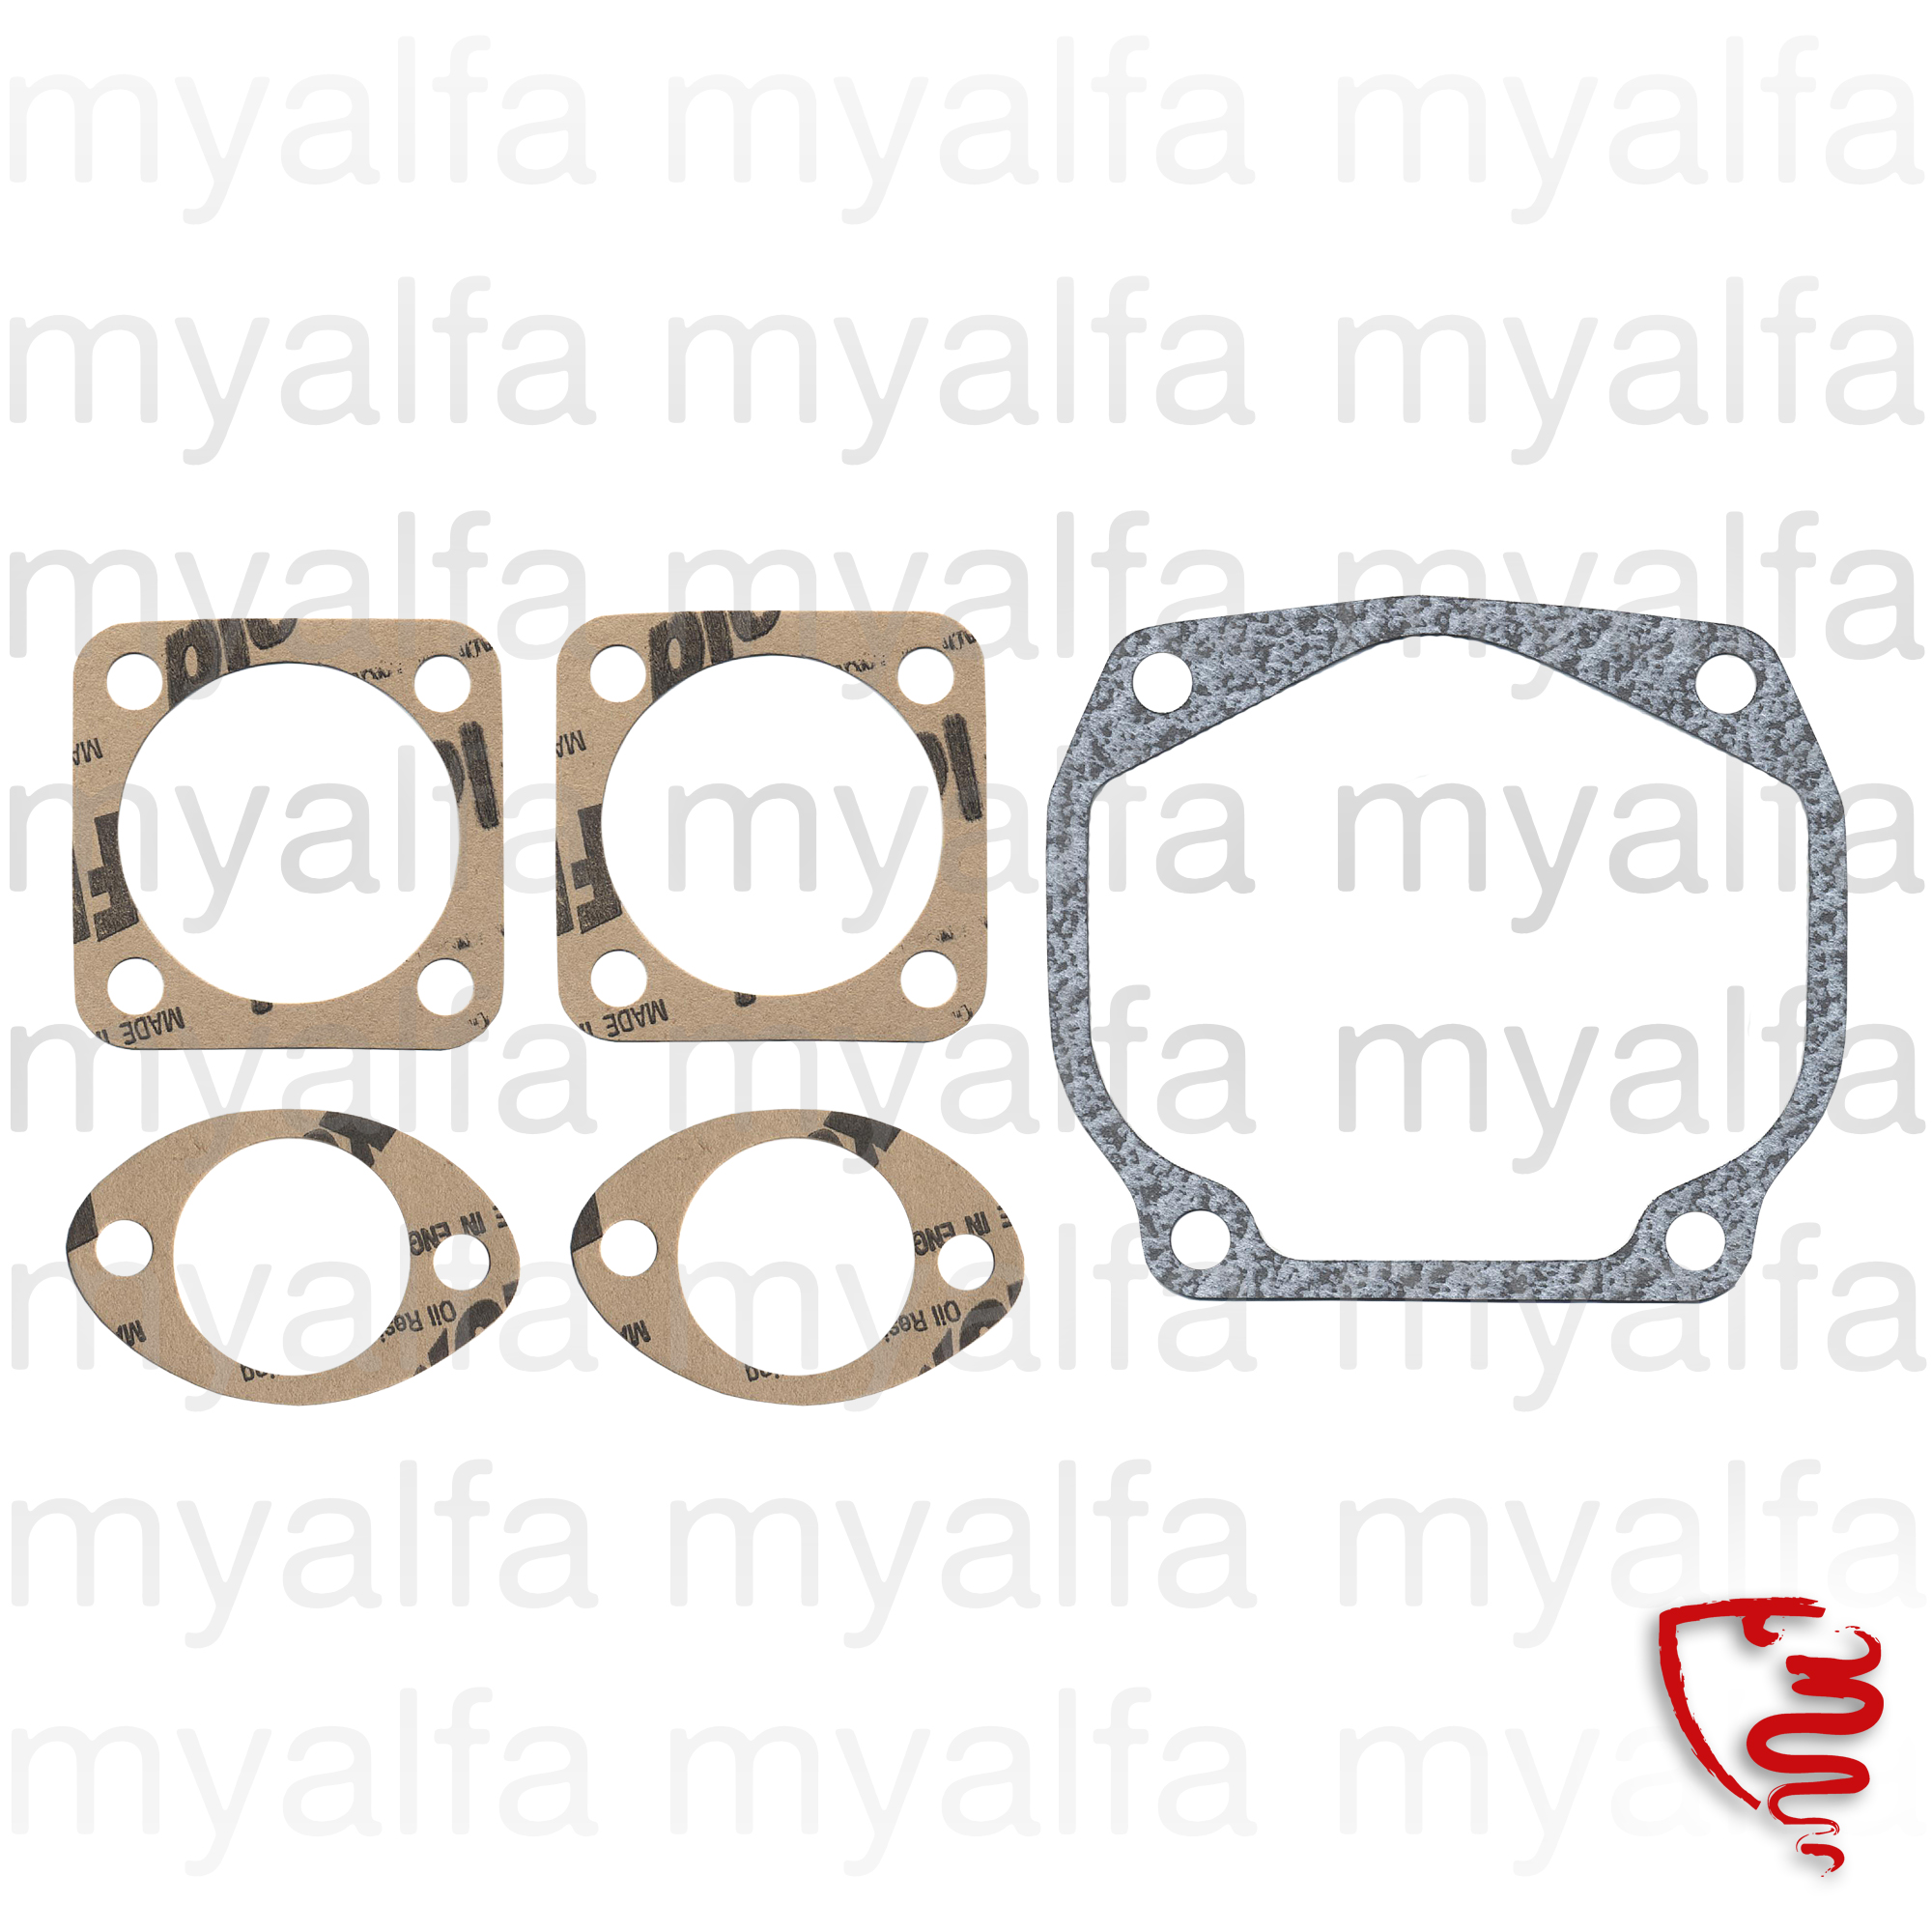 Game joints for steering box for 105/115, Chassis Mount, Steering, Steering Box